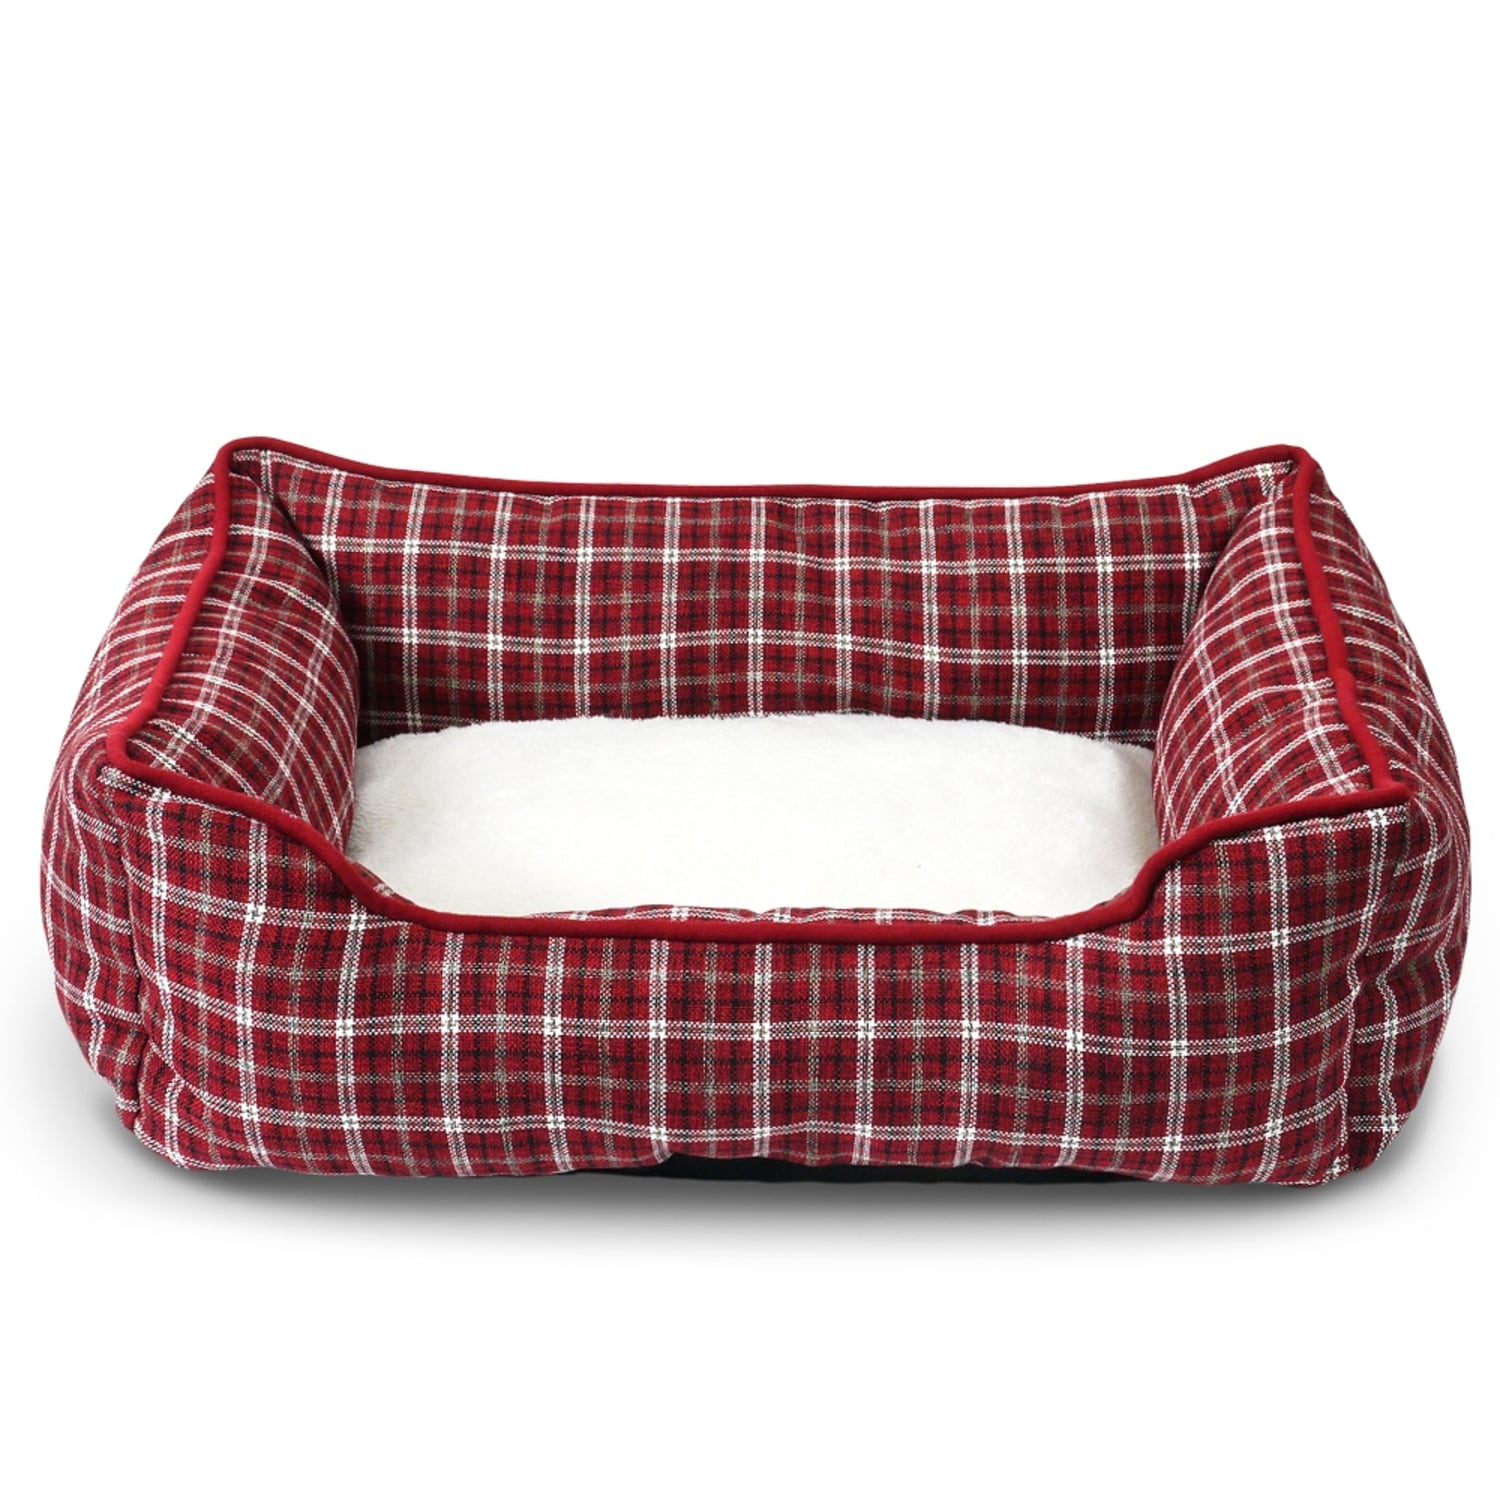 Fluffy Paws Clic Pet Plaid Bed